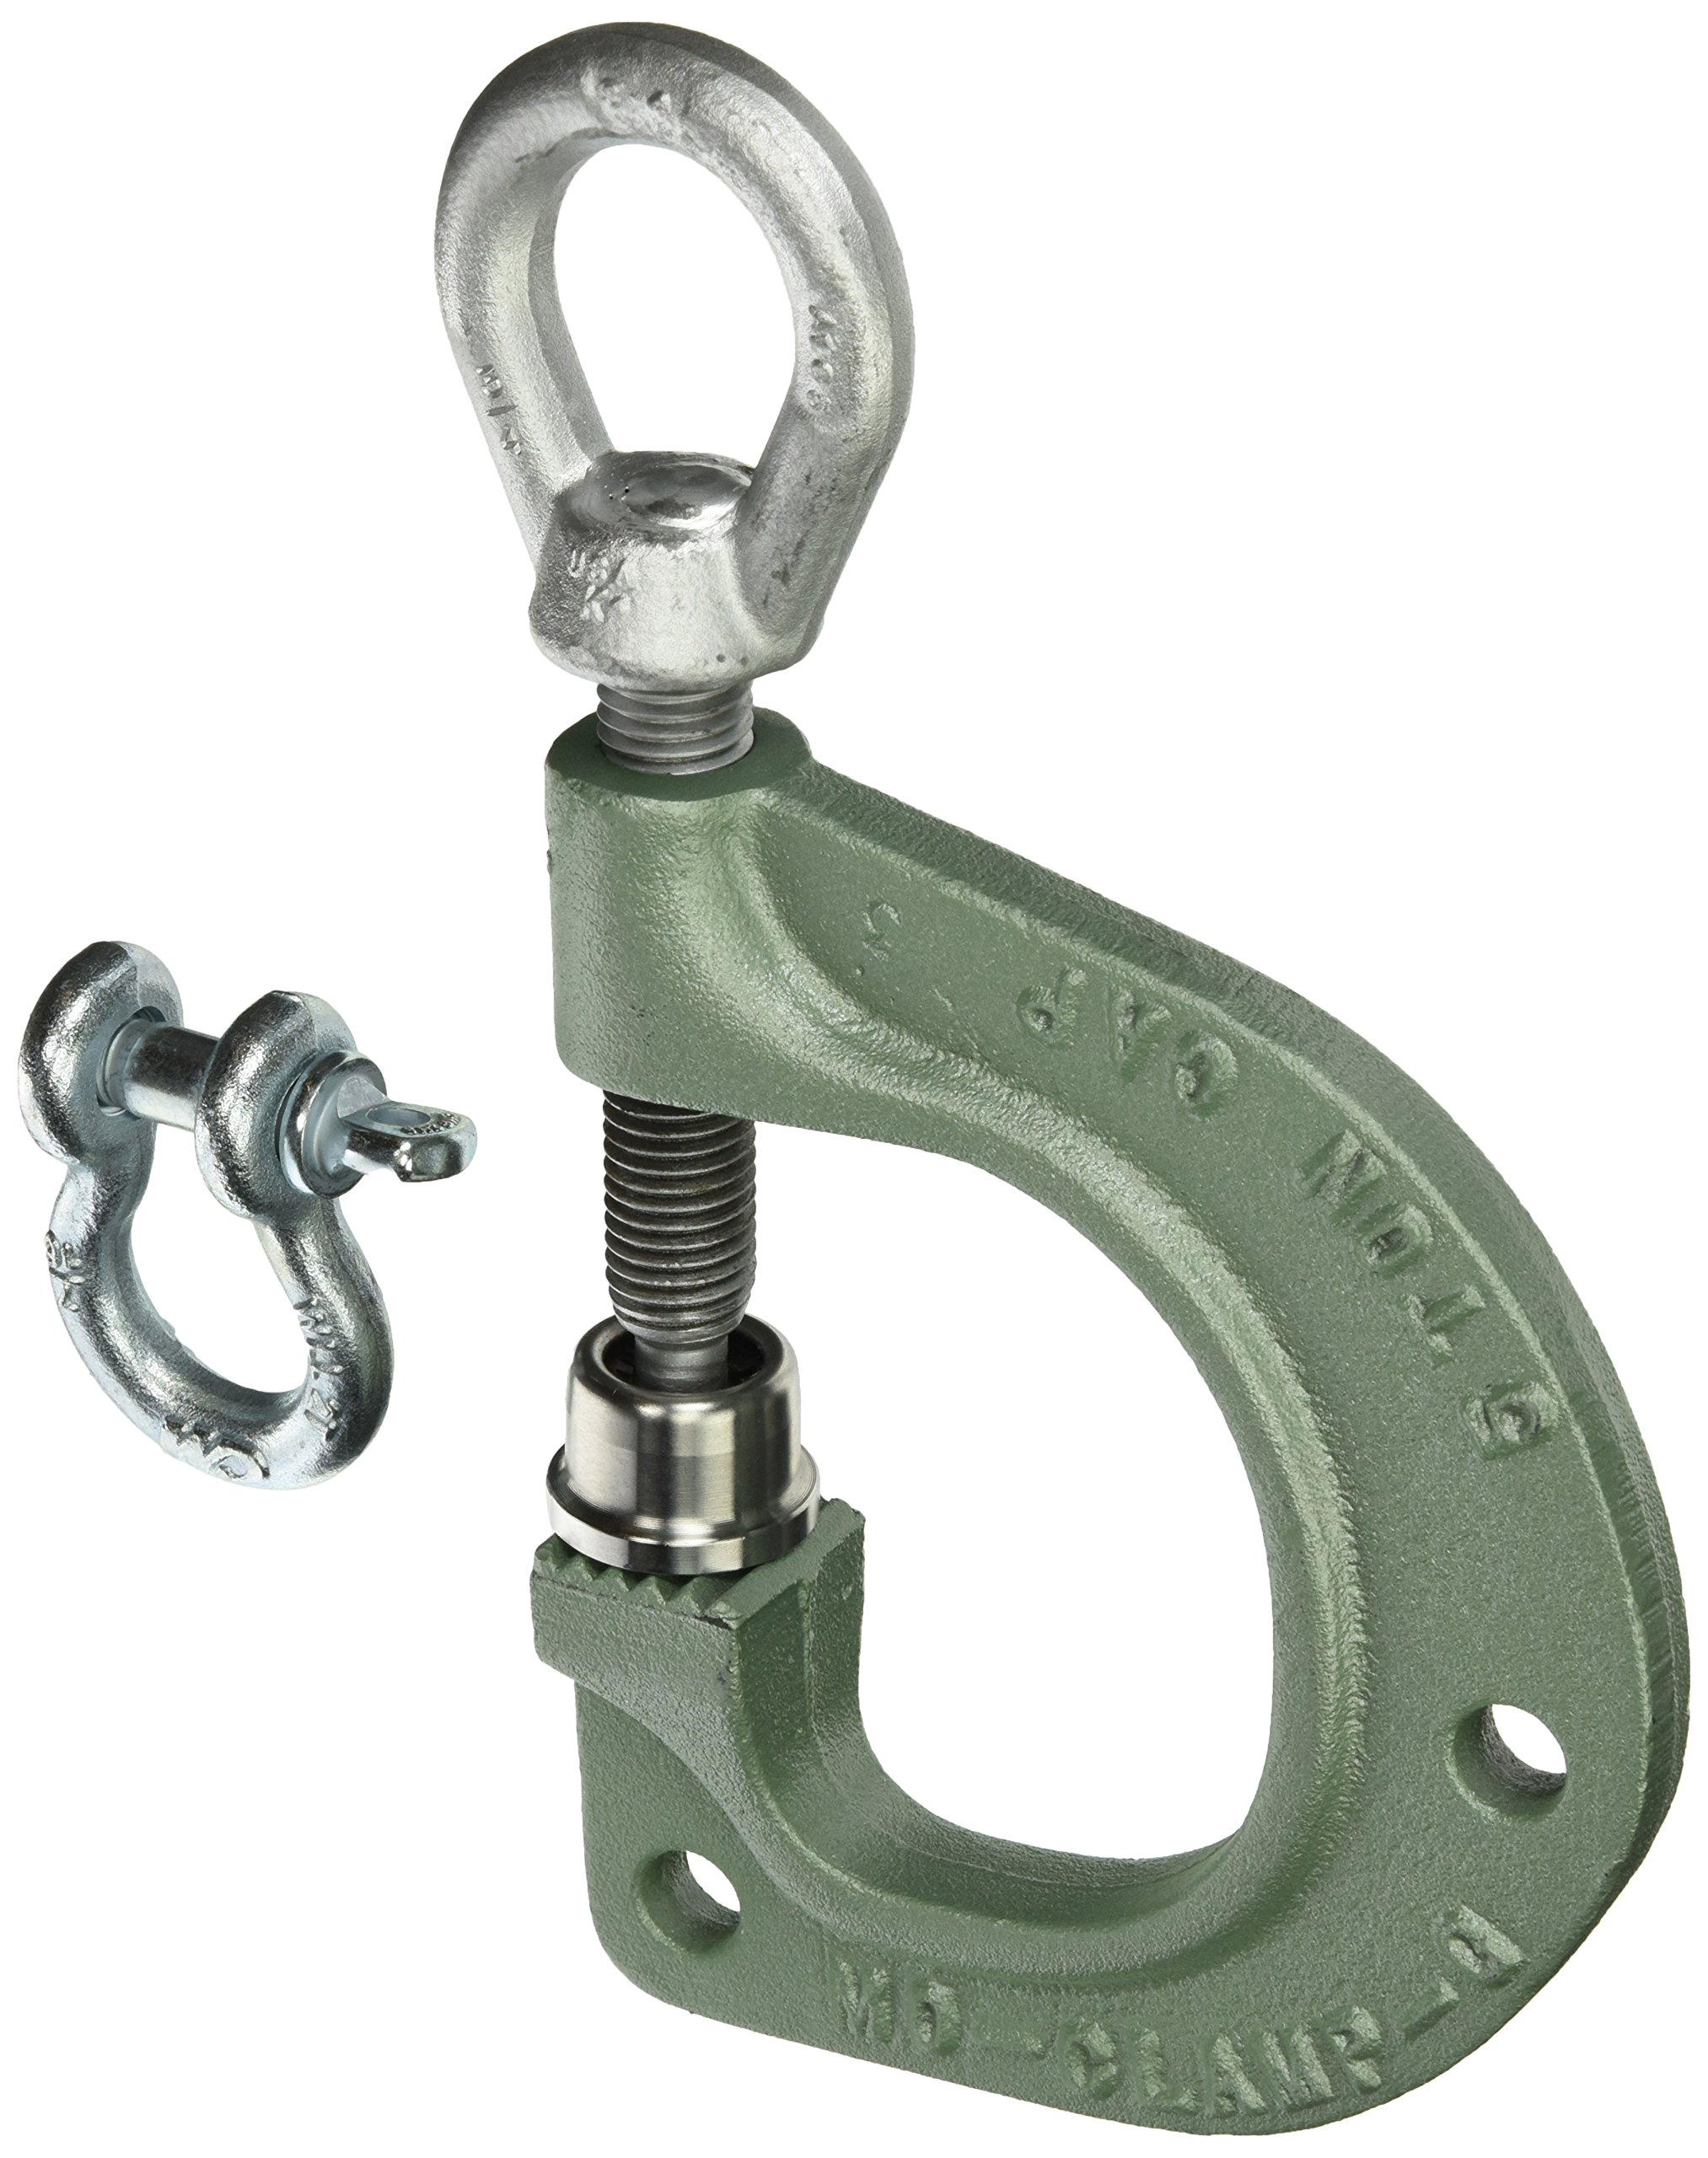 Mo-Clamp MOC5800 G Clamp by Mo-Clamp